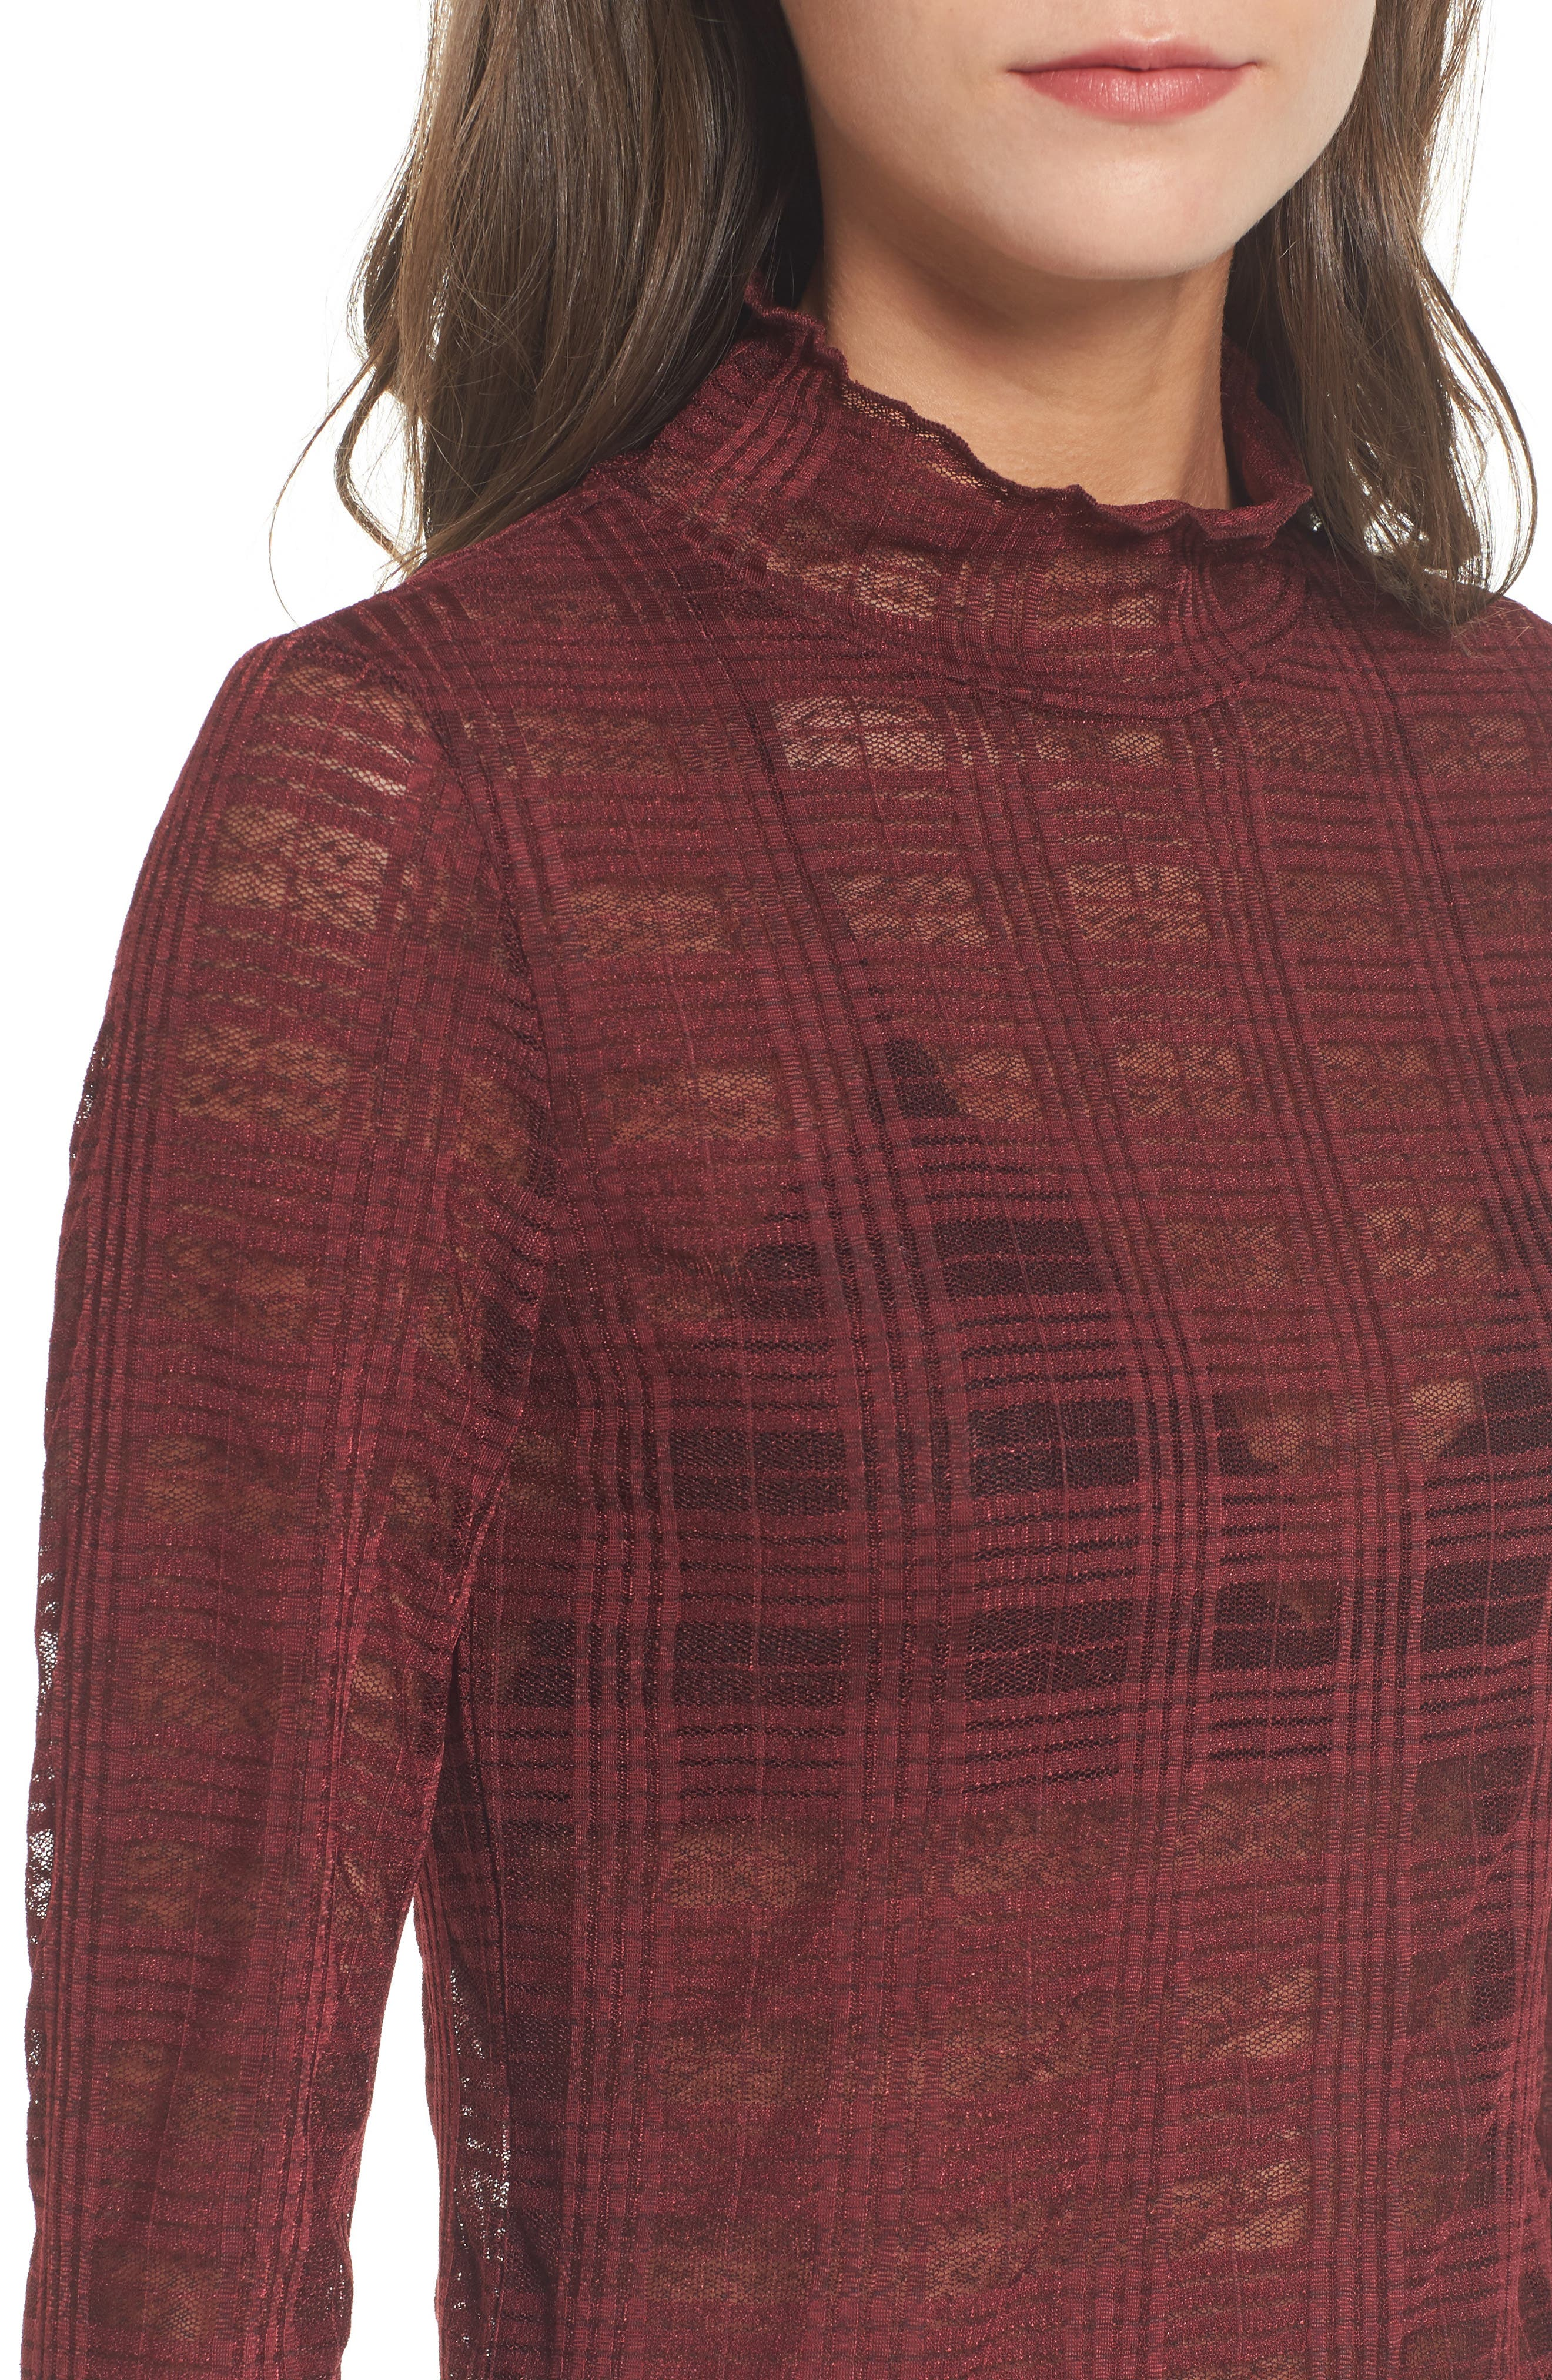 Bell Sleeve Mesh Top,                             Alternate thumbnail 4, color,                             601